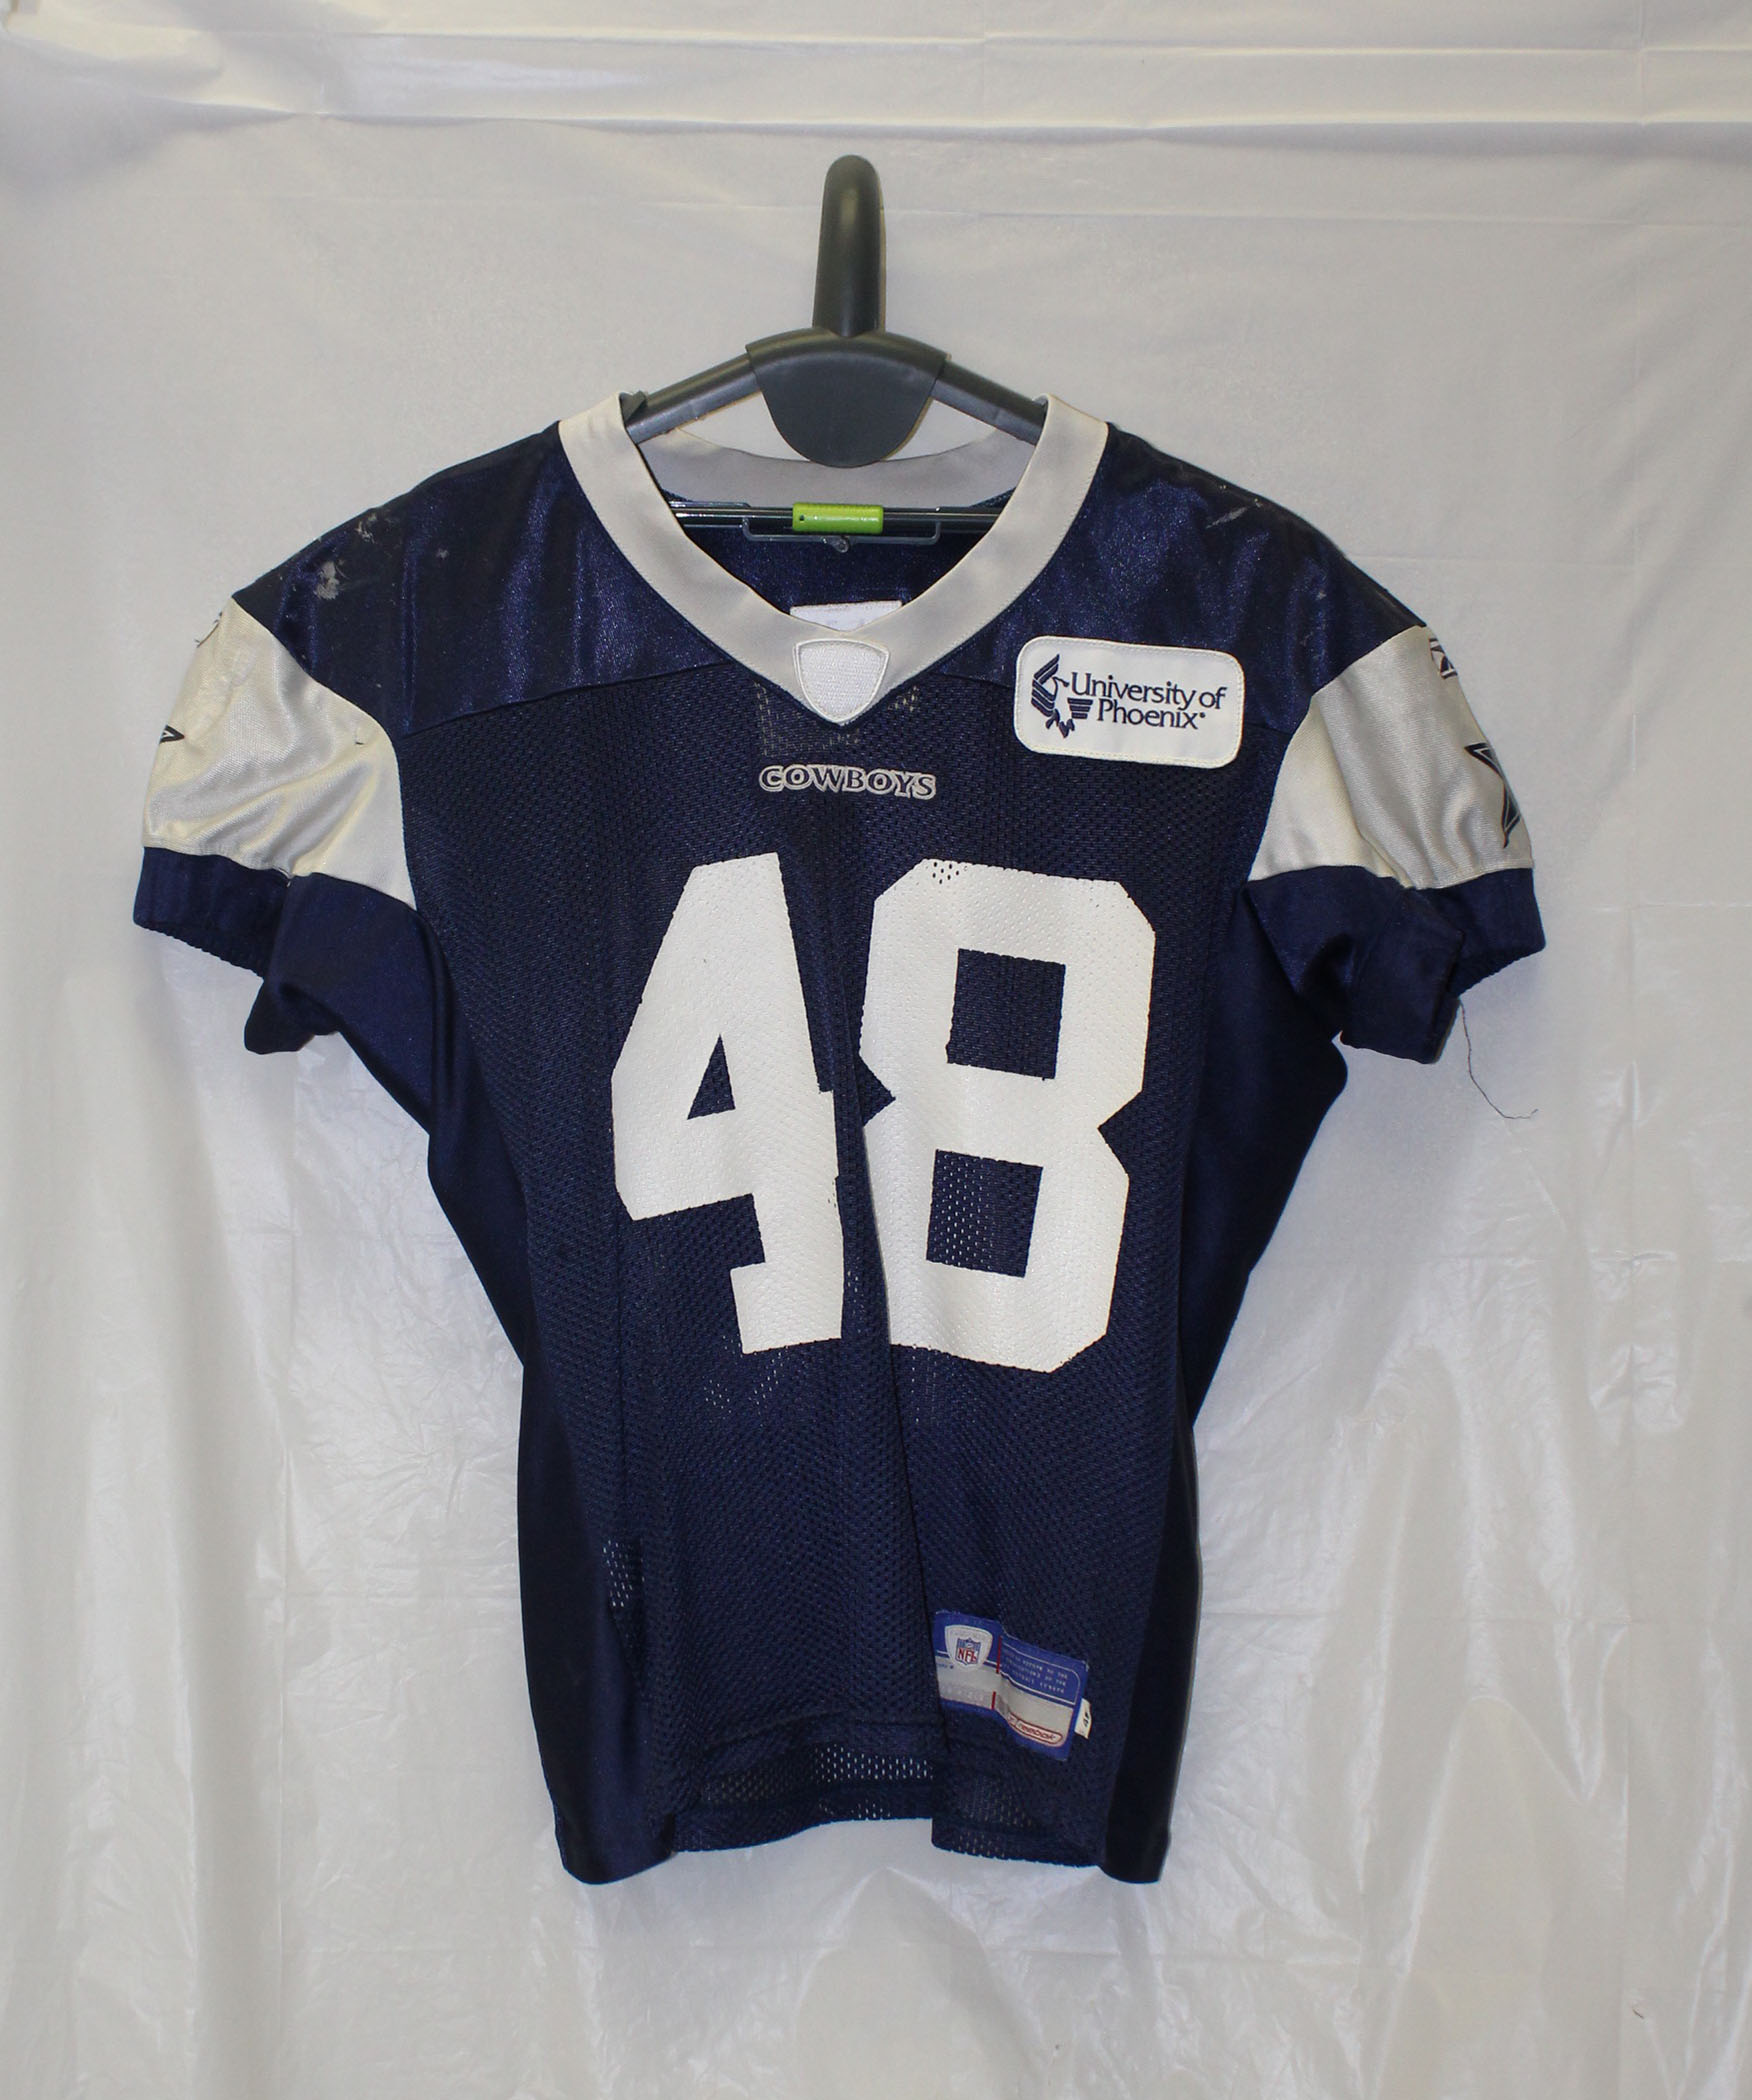 1a1e1ff08 Dallas Cowboys Reebok Authentic Practice Worn Jersey with White ...